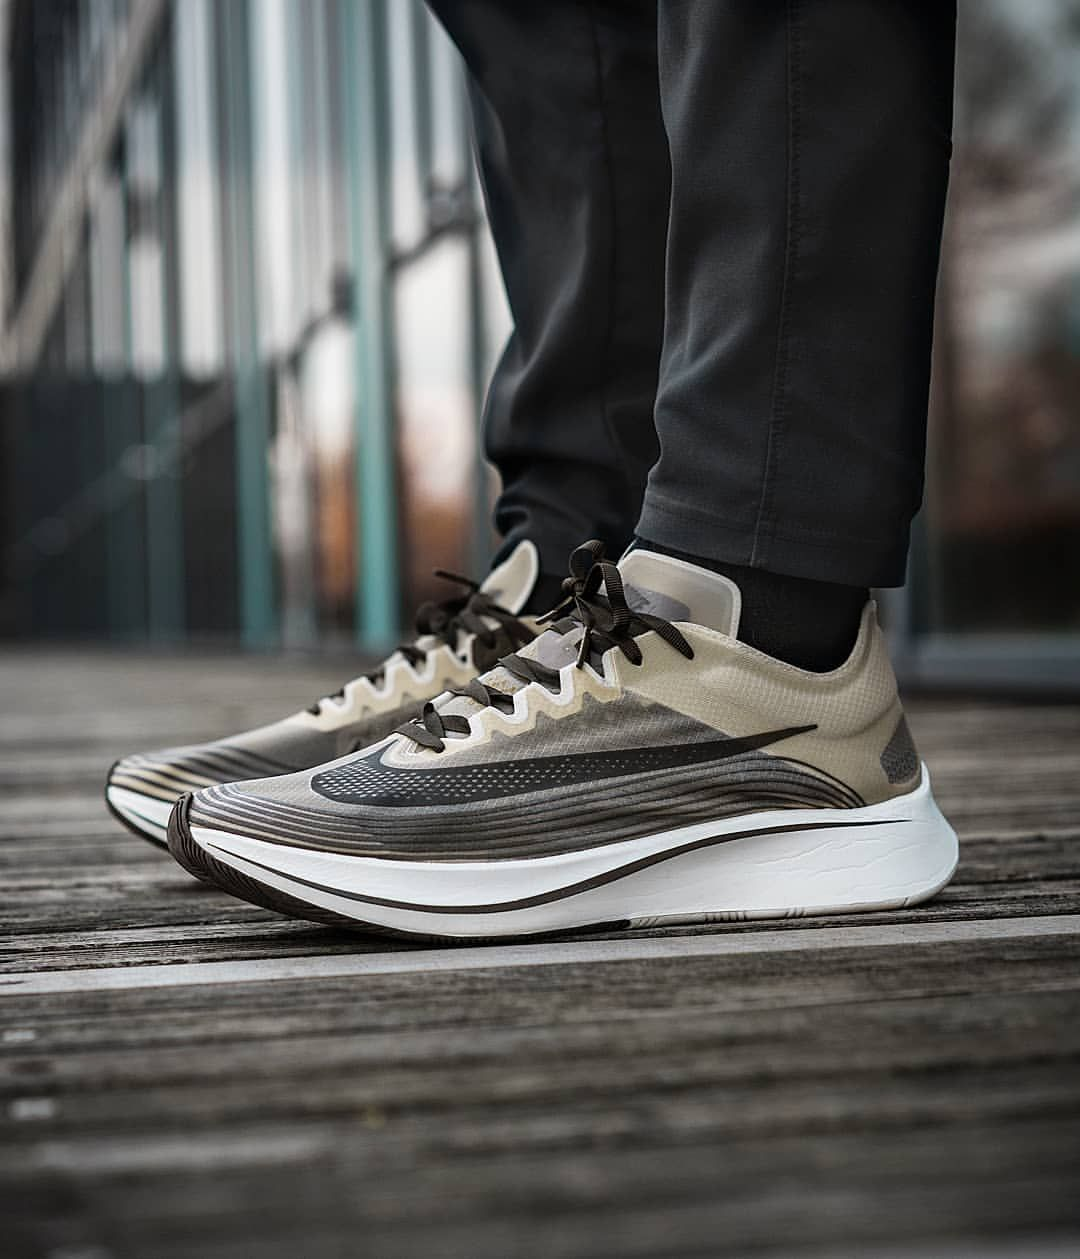 Nike Zoom Fly SP | Sneakers в 2019 г.